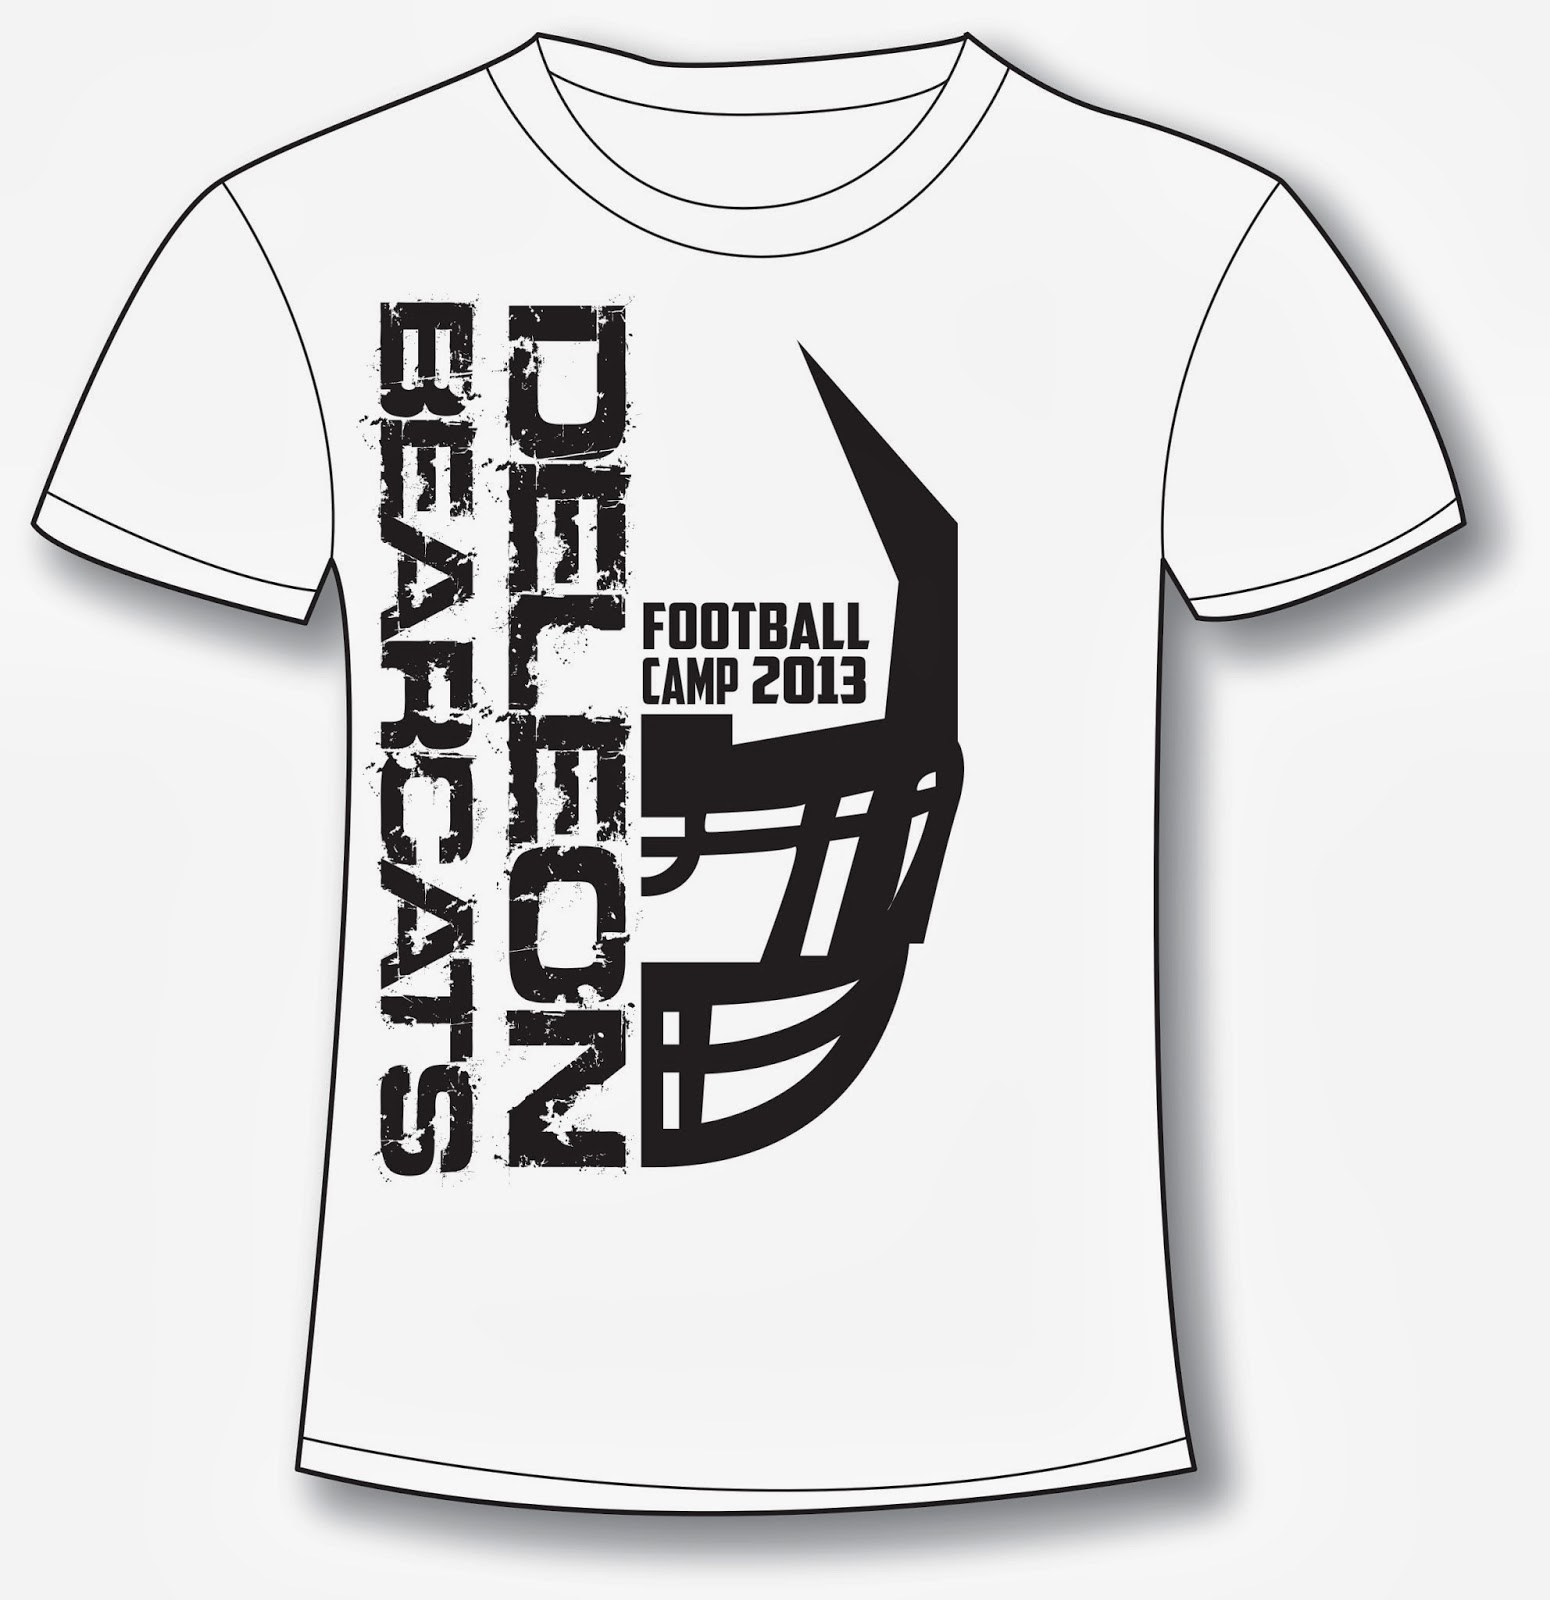 Shirt Football T Shirts More Football Shirt Designs Football Ideas